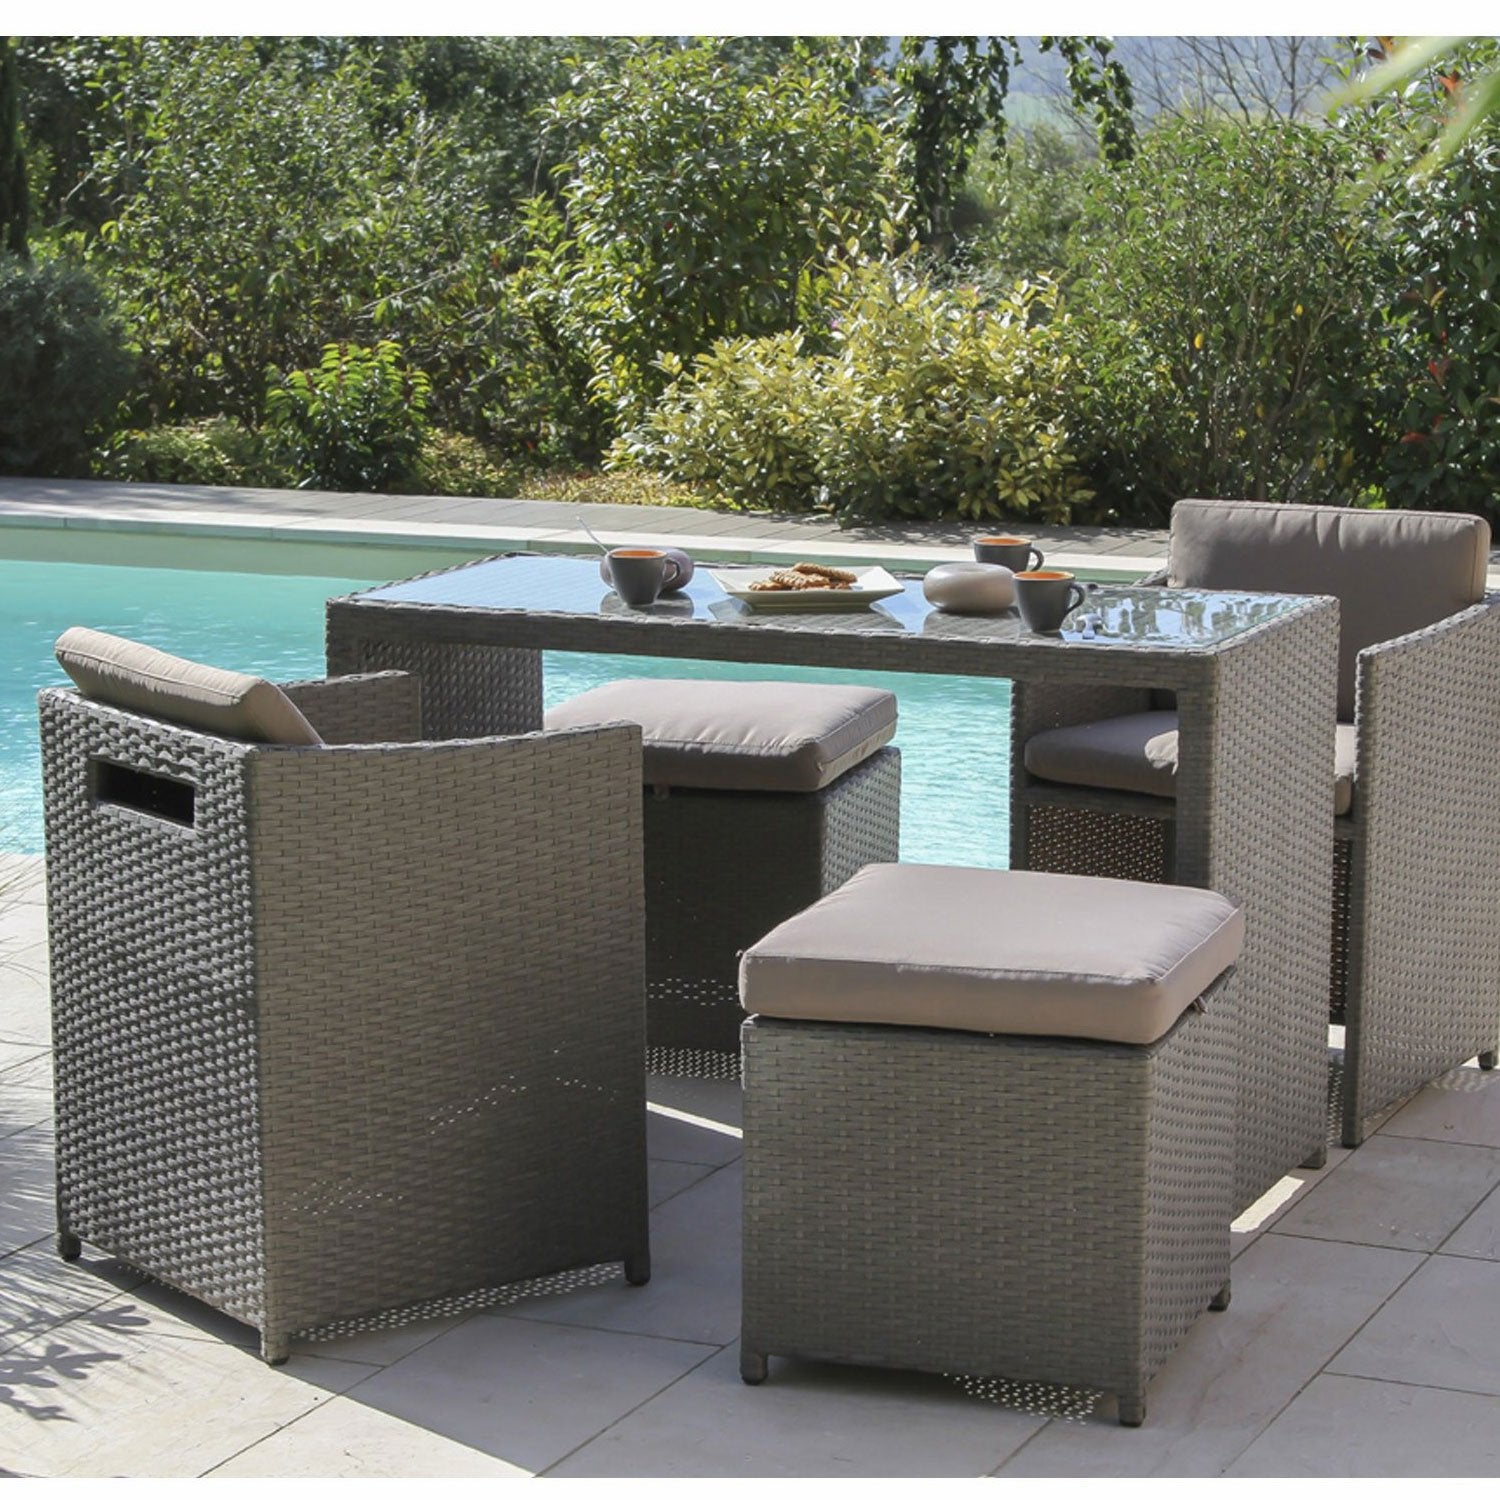 Salon de jardin foggia r sine tress e gris 1 table 2 fauteuils 2 tabourets - Table de jardin tressee ...